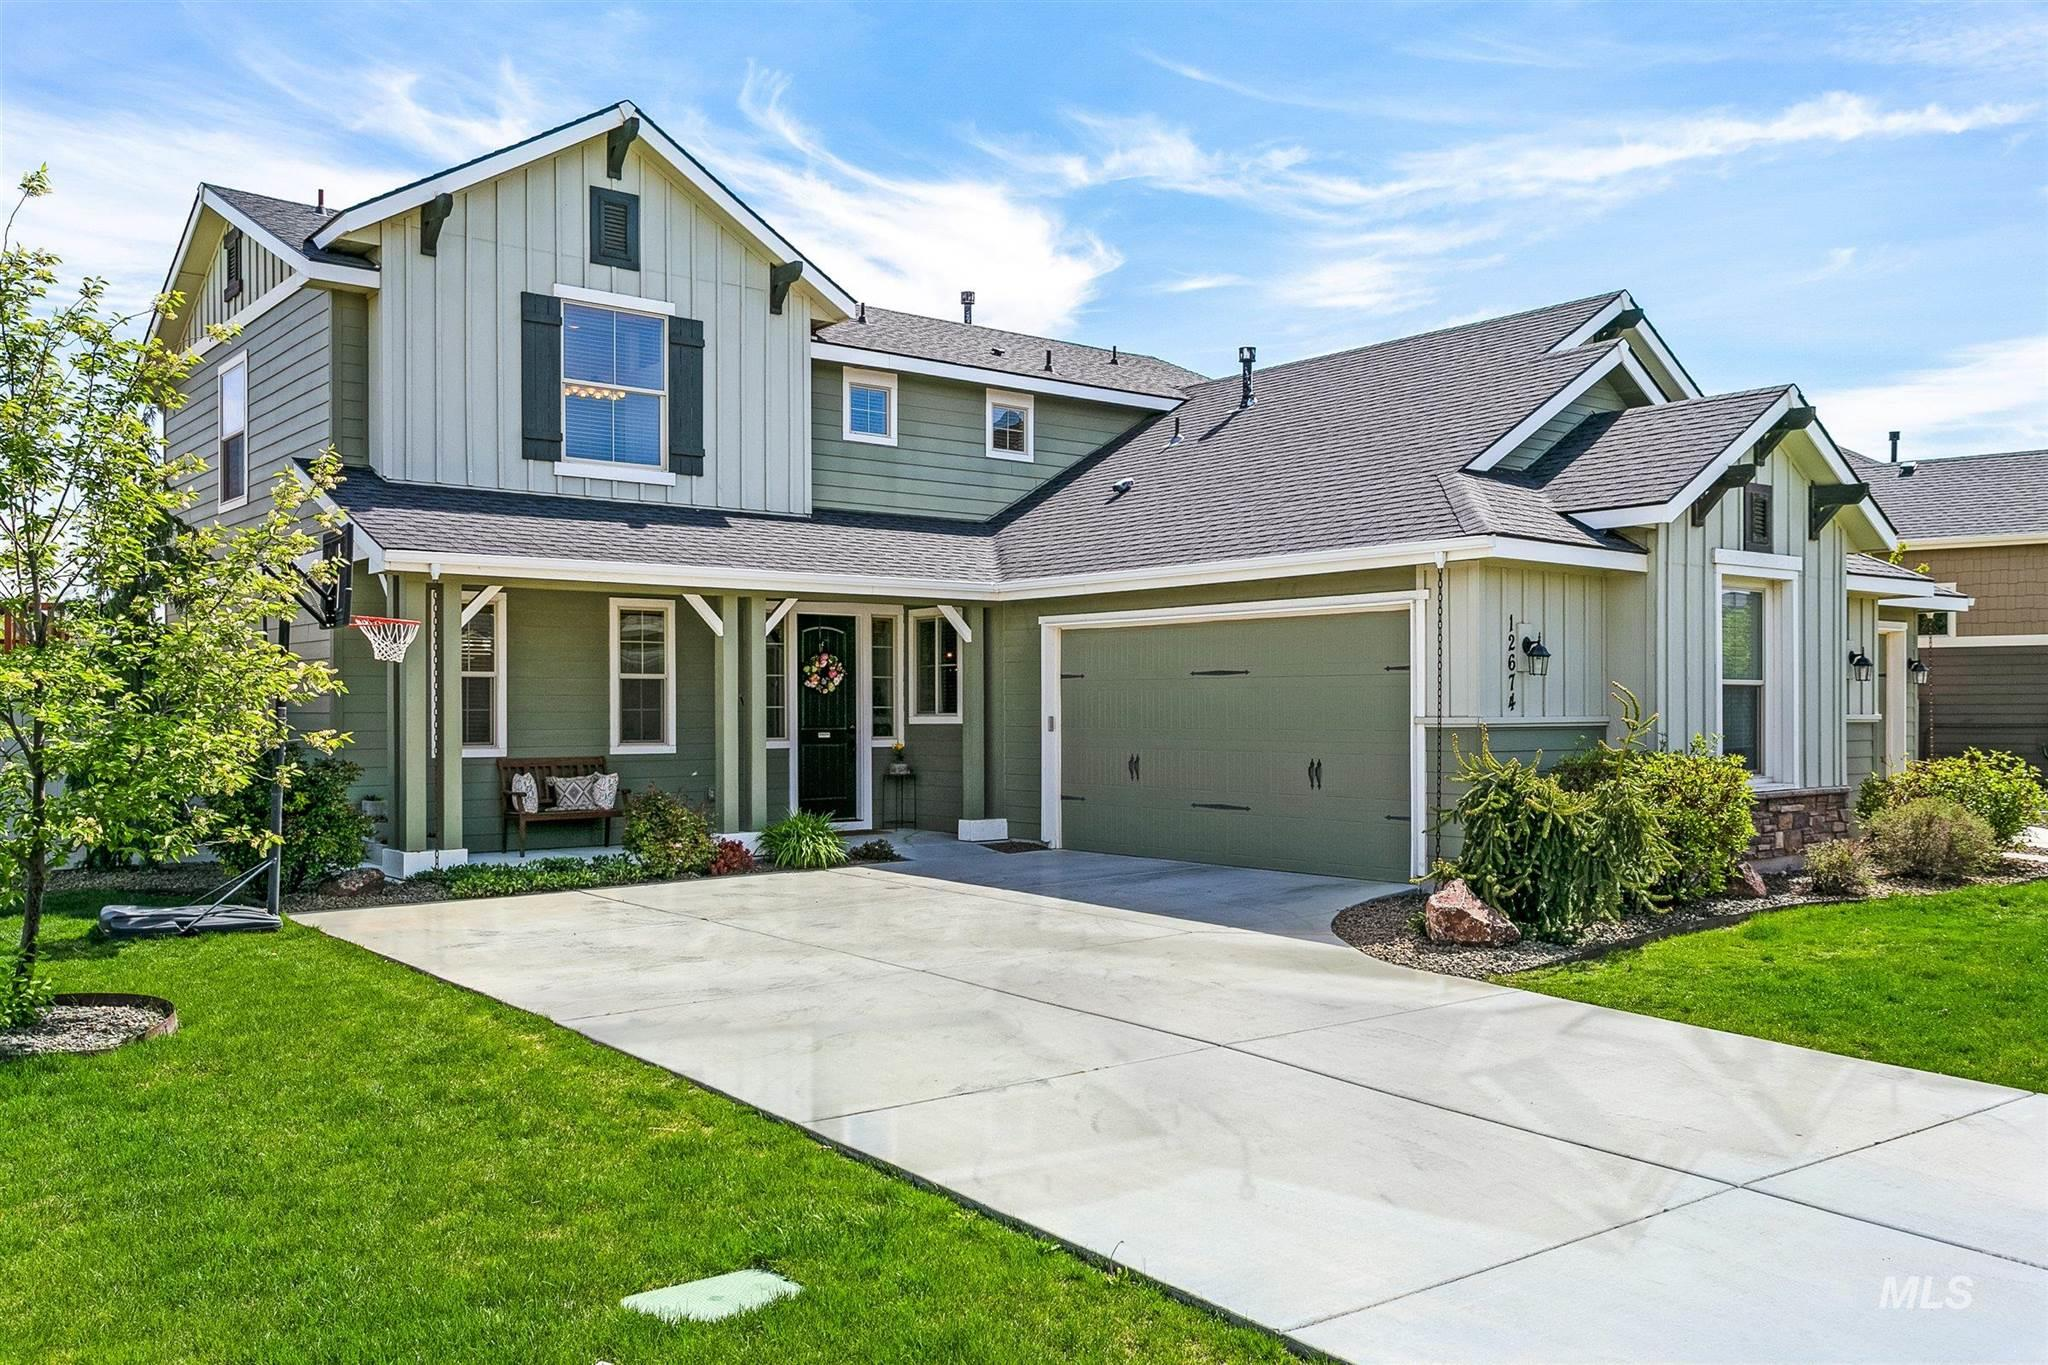 12674 S CARRIAGE HILL Property Photo - Nampa, ID real estate listing